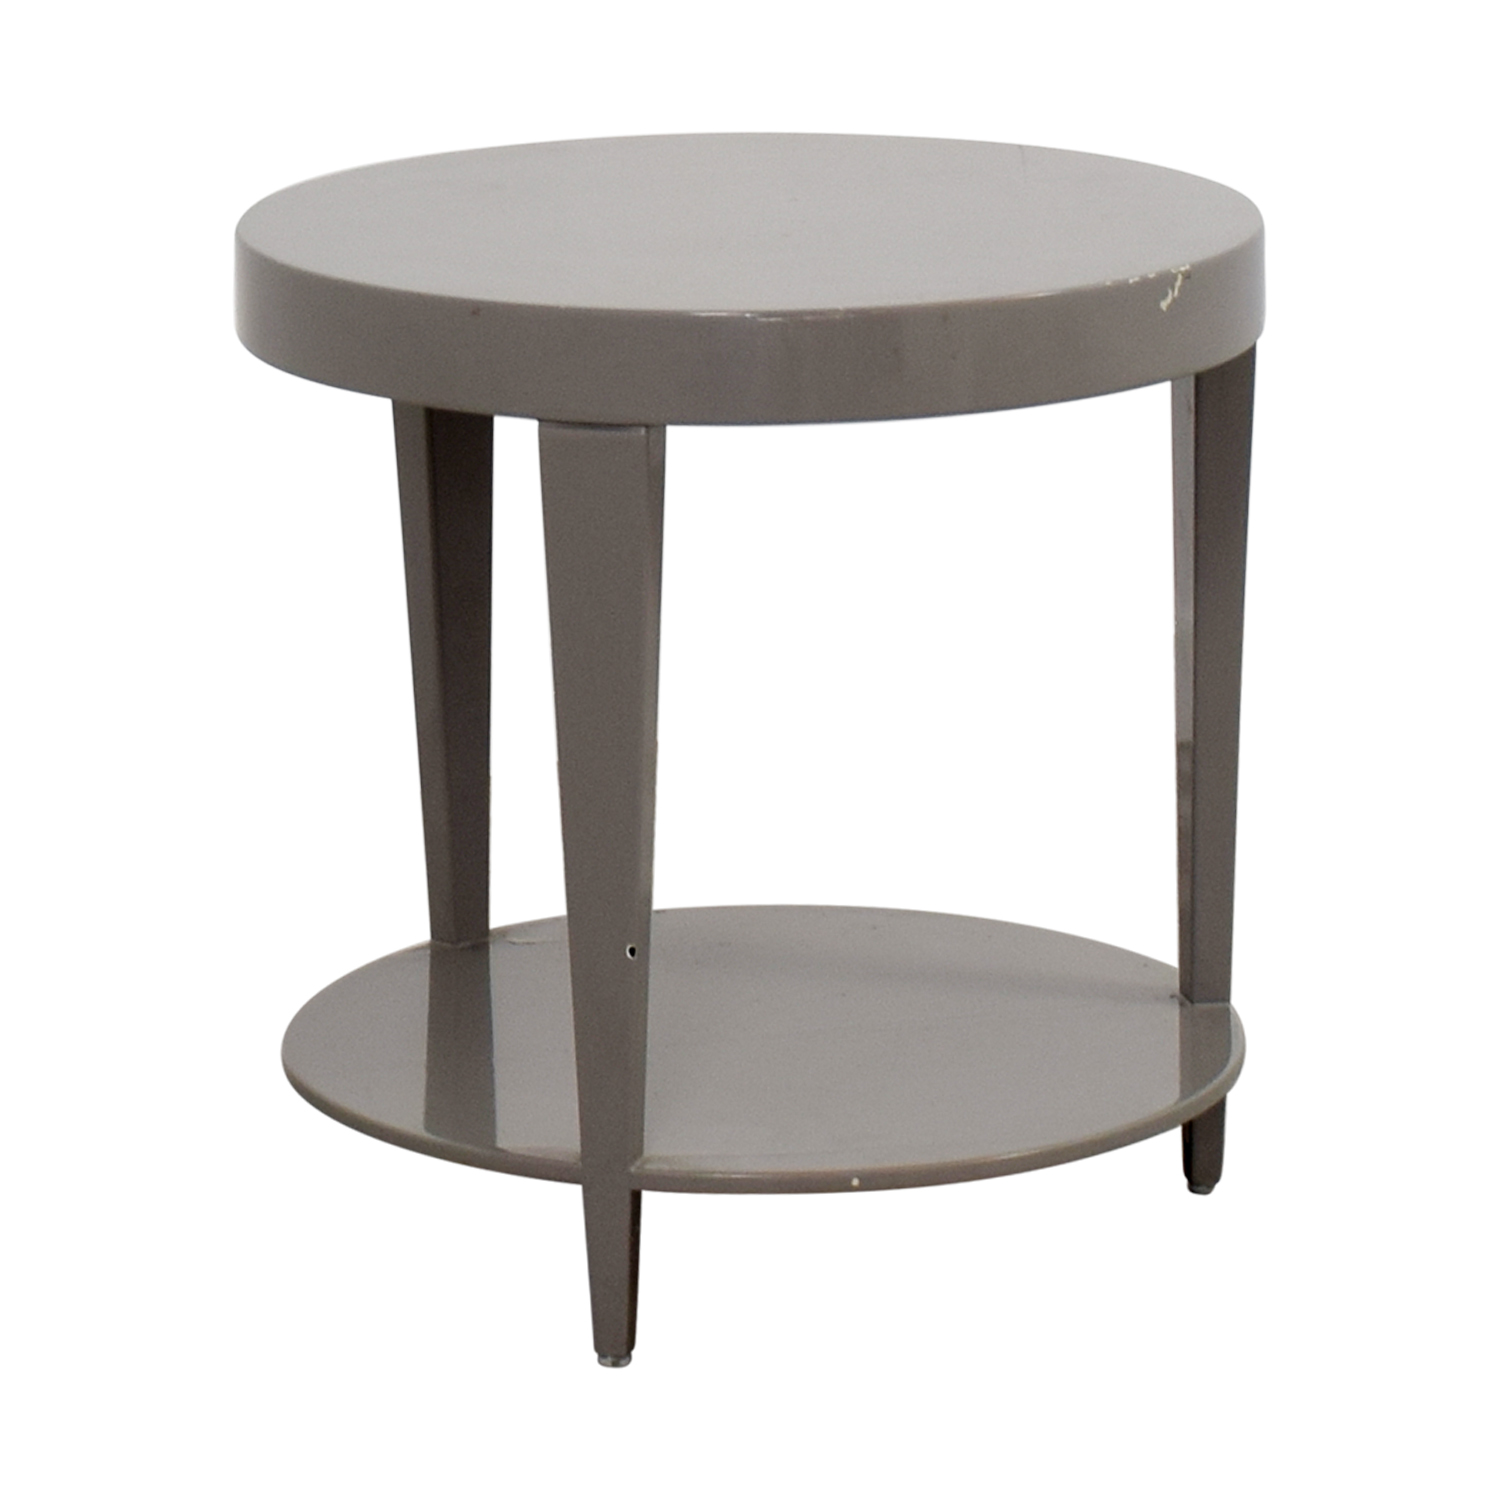 90 off furniture masters furniture masters round grey for Furniture 90 off